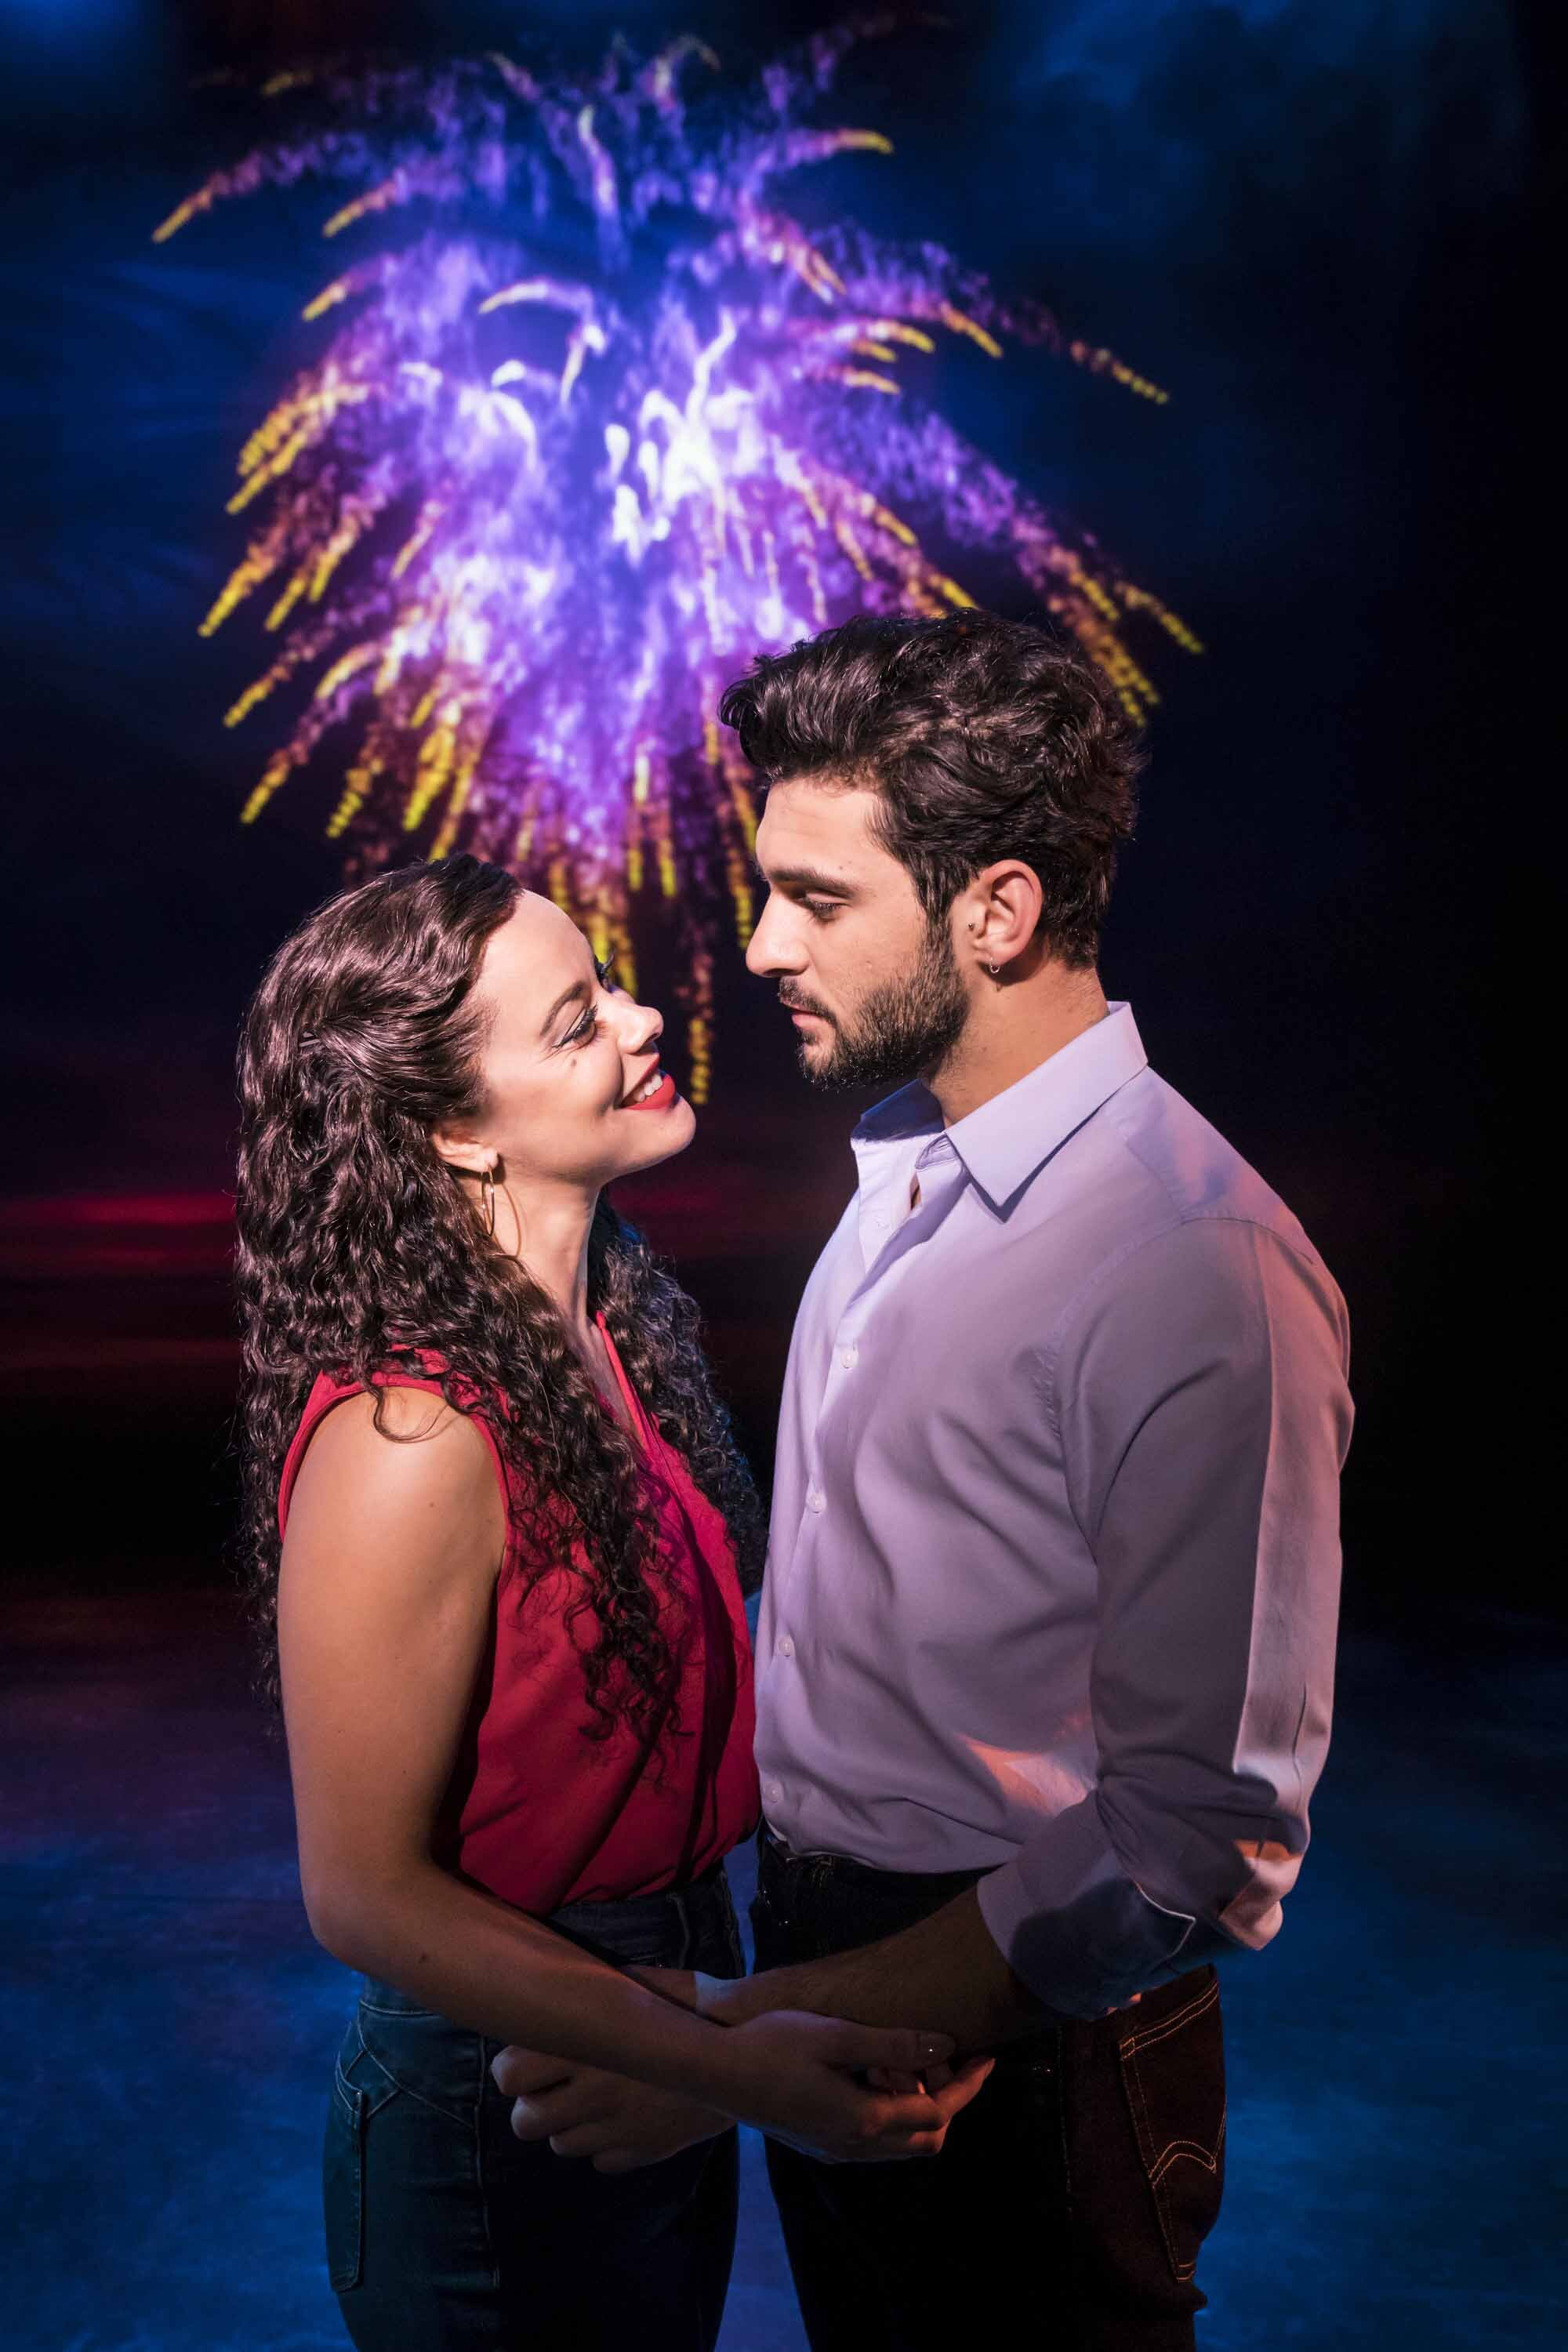 Philippa Stefani 'Gloria Estefan' and George Ioannadis 'Emilio Estefan' in  On Your Feet!  which runs at Wales Millennium Centre from 21-26 October 2019. For ticket details visit www.wmc.org.uk Photo Johan Persson